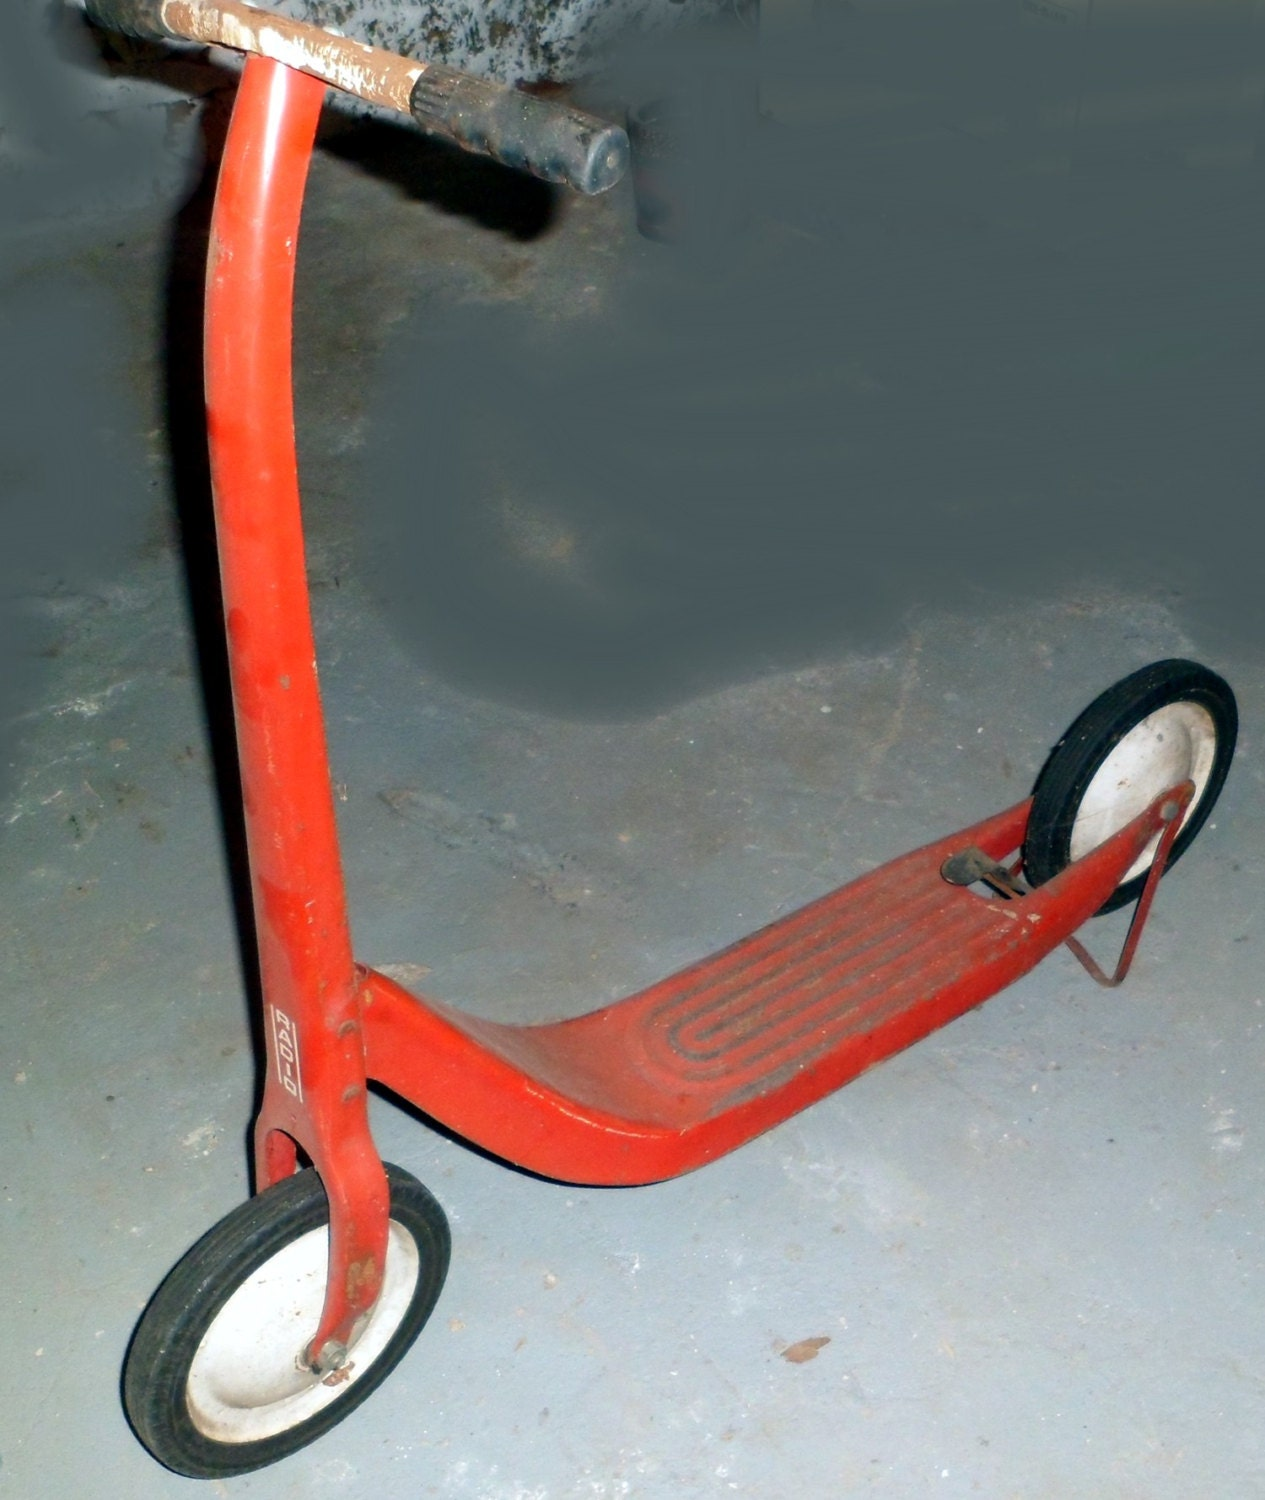 The History of the Scooter